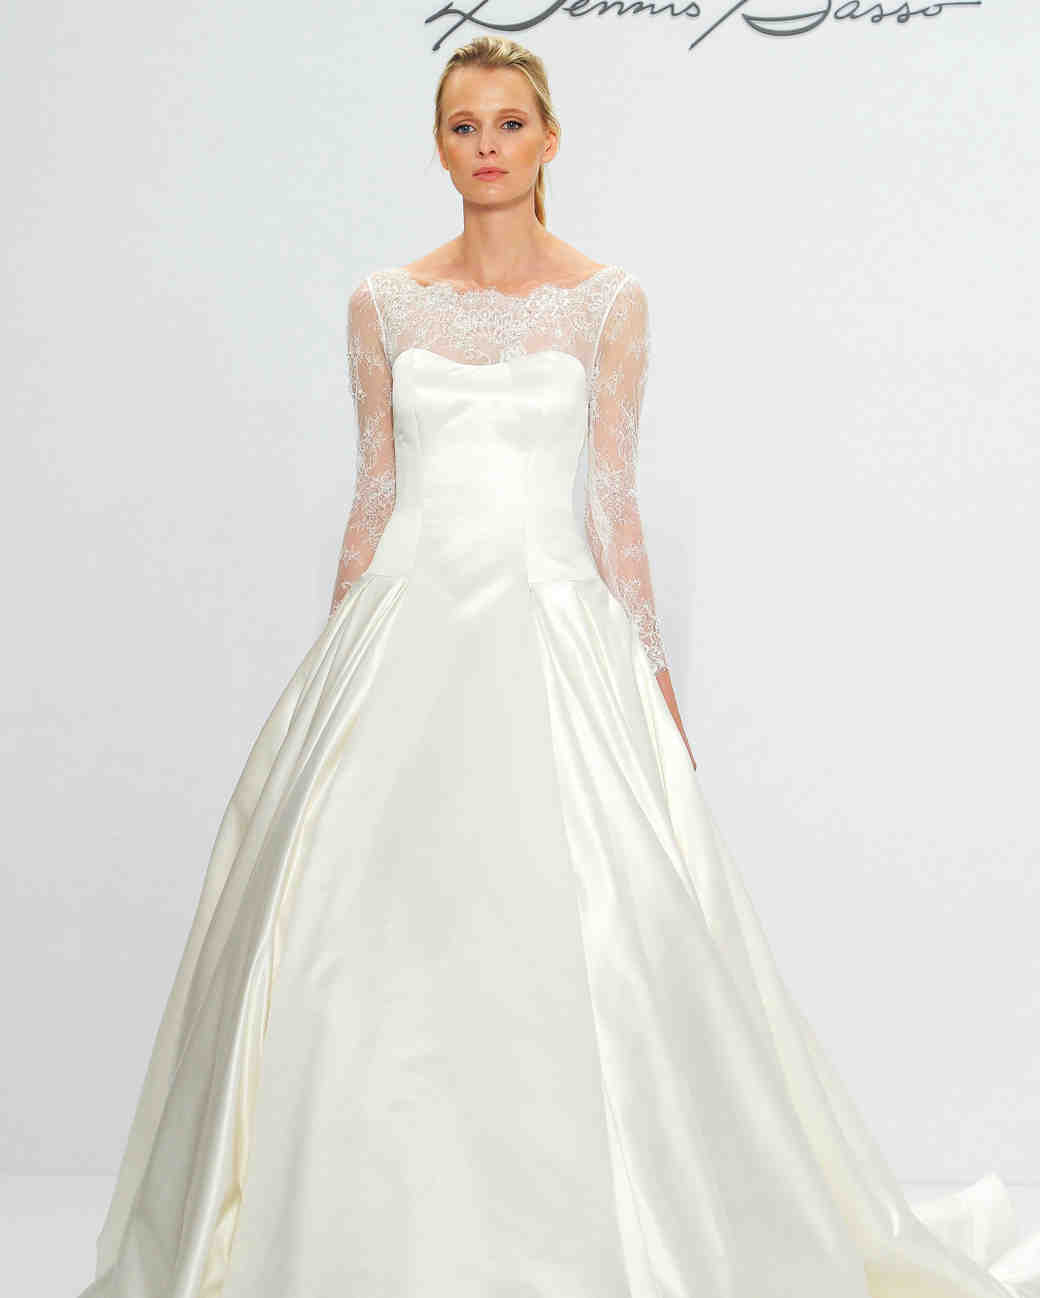 Dennis Basso Fall 2017 Wedding Dress Collection